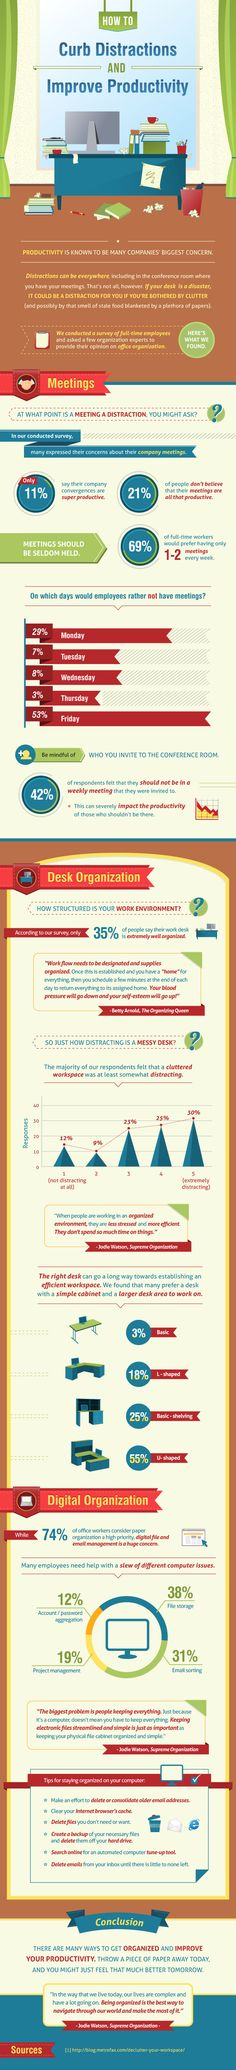 Infographic For The Win! How To Curb Distractions And Improve Productivity